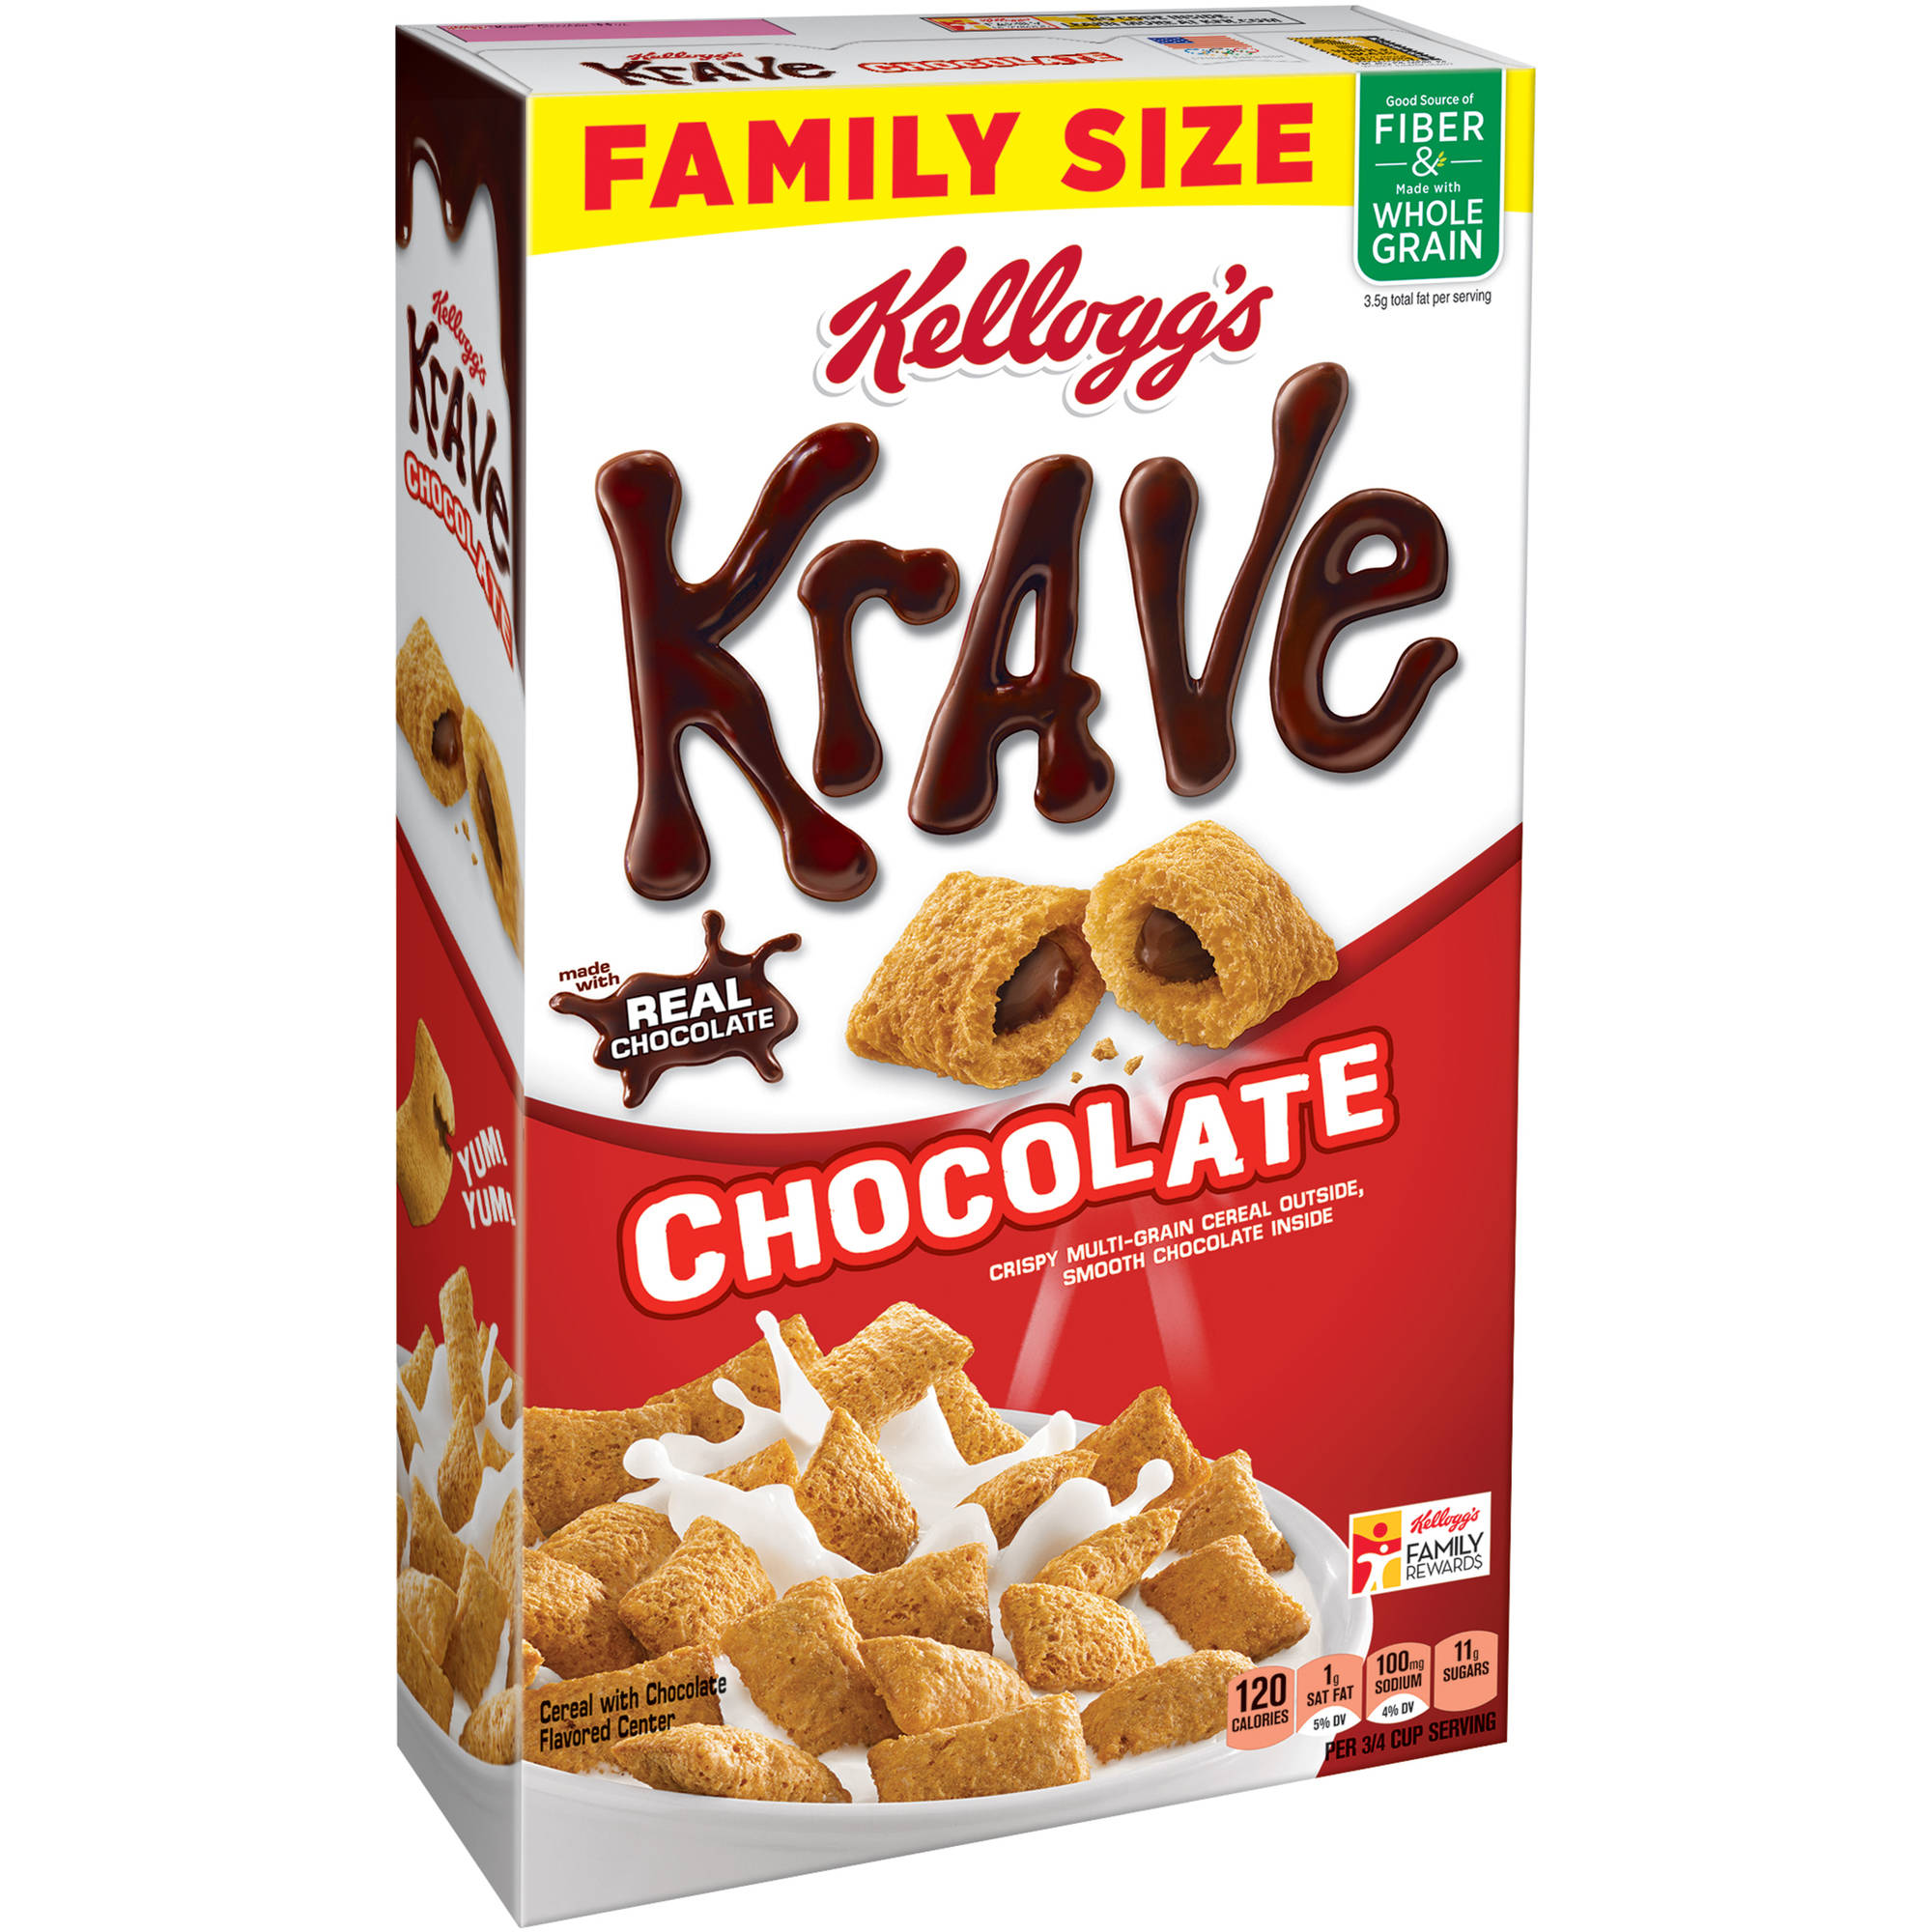 Kellogg's Krave Chocolate Cereal Family Size, 19.9 oz